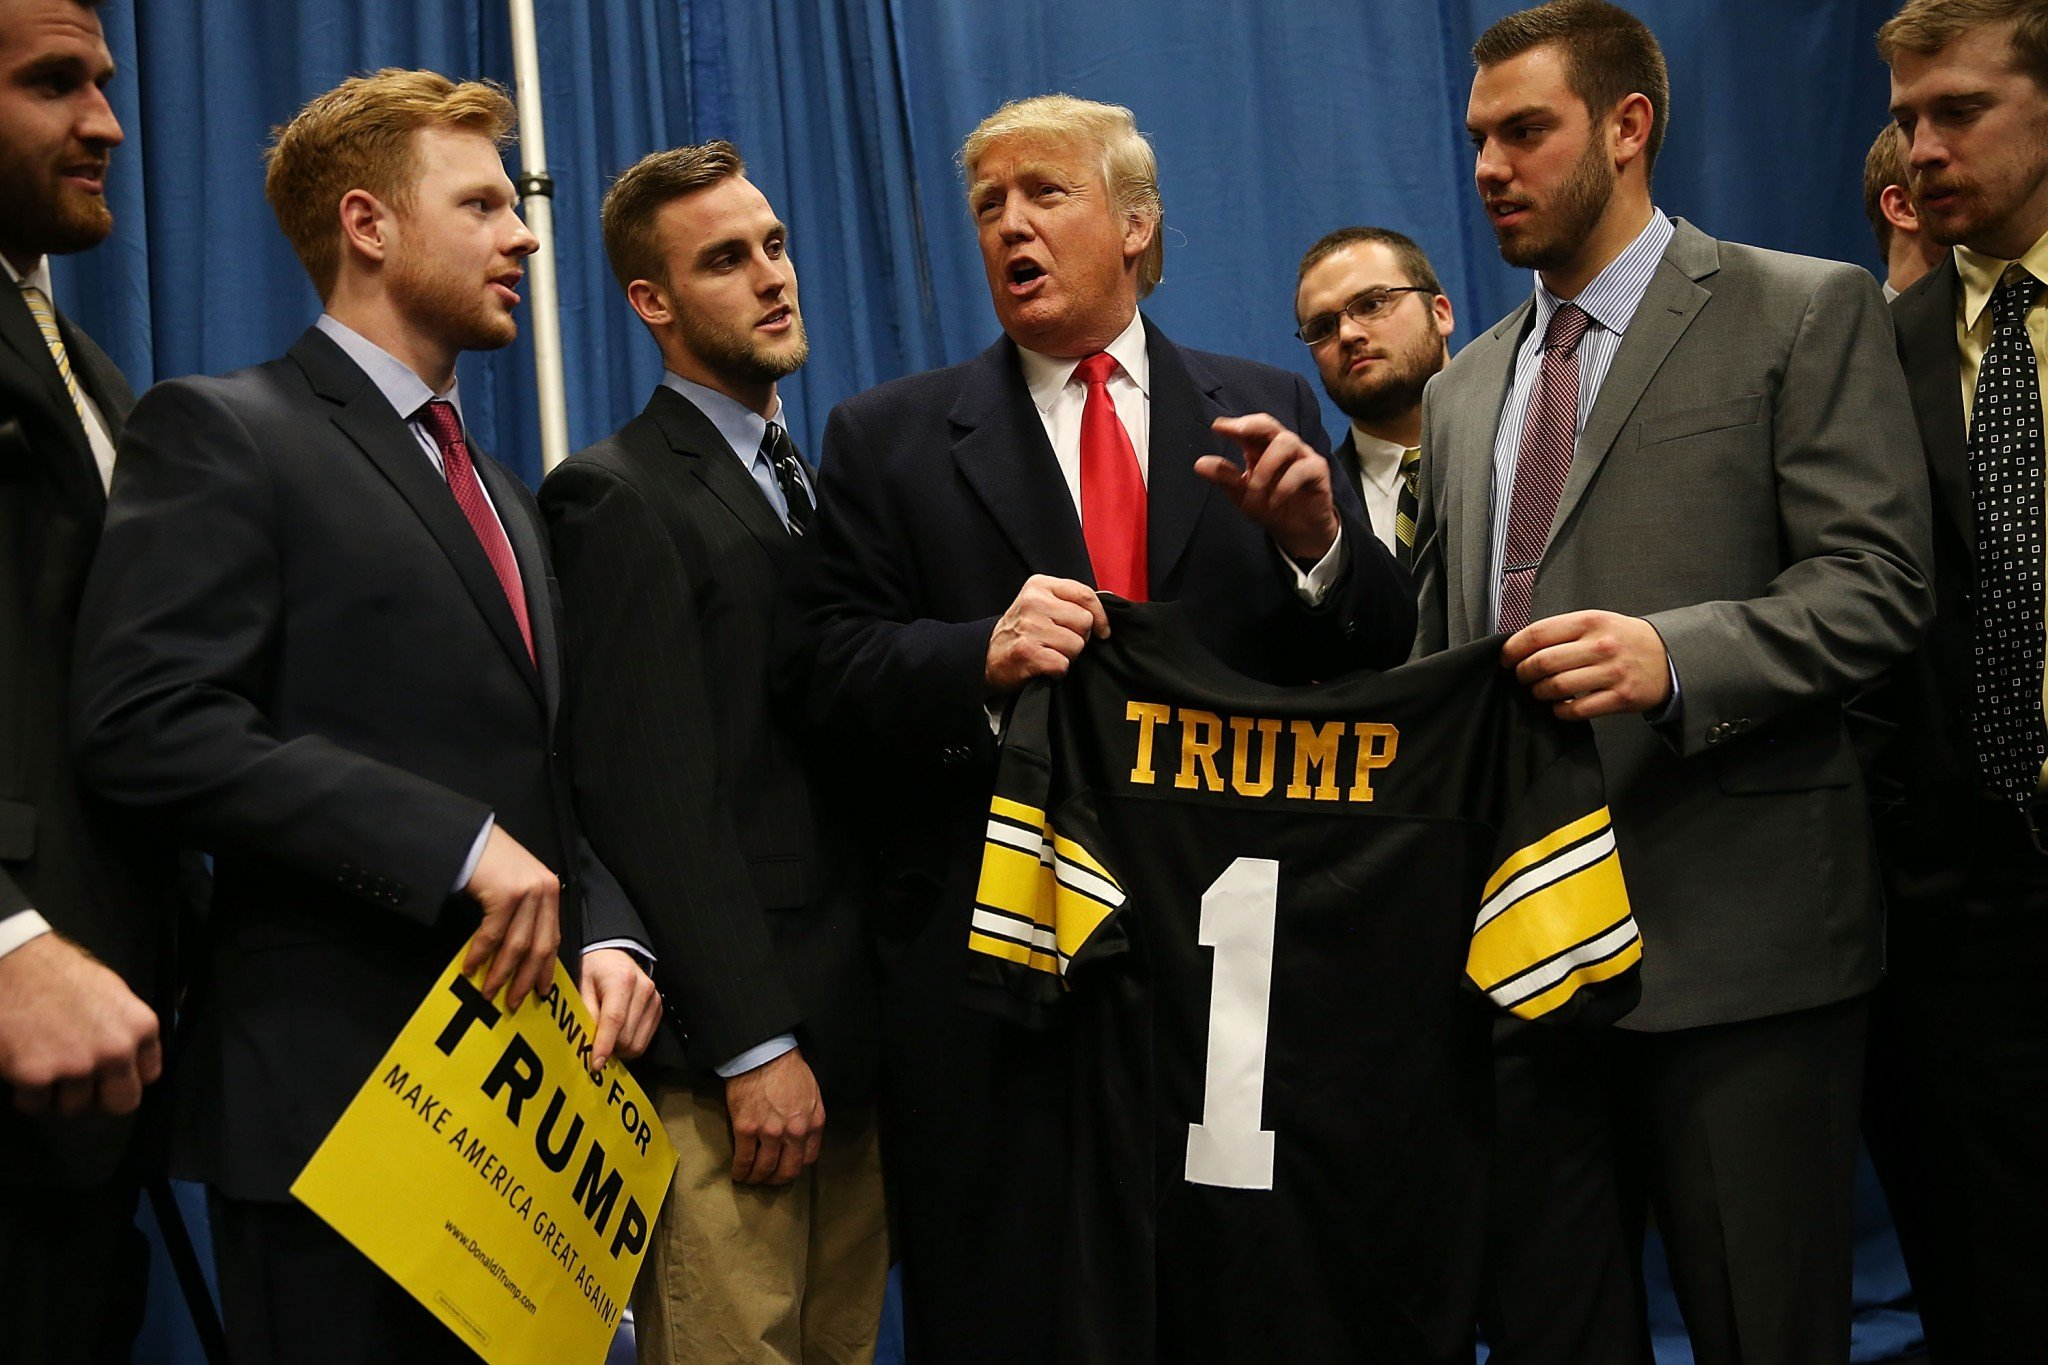 Donald Trump already has an Iowa jersey from visiting the state during his presidential campaign. (Getty)